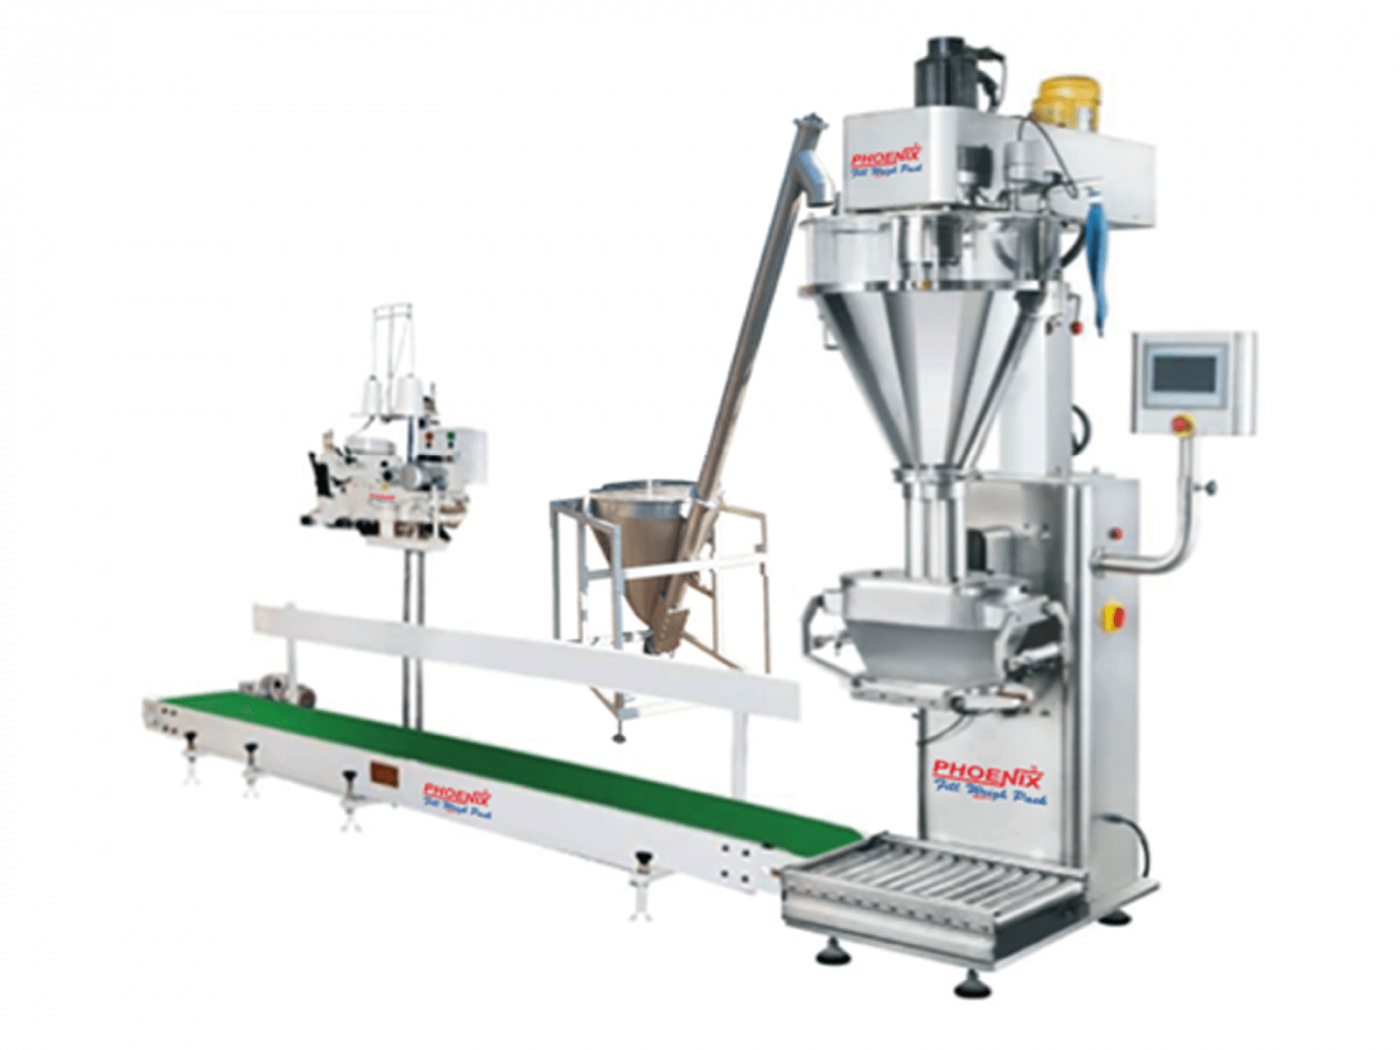 ipm-25a-woven-bag-packing-machine-with-auger-filler-stiching-machine-007